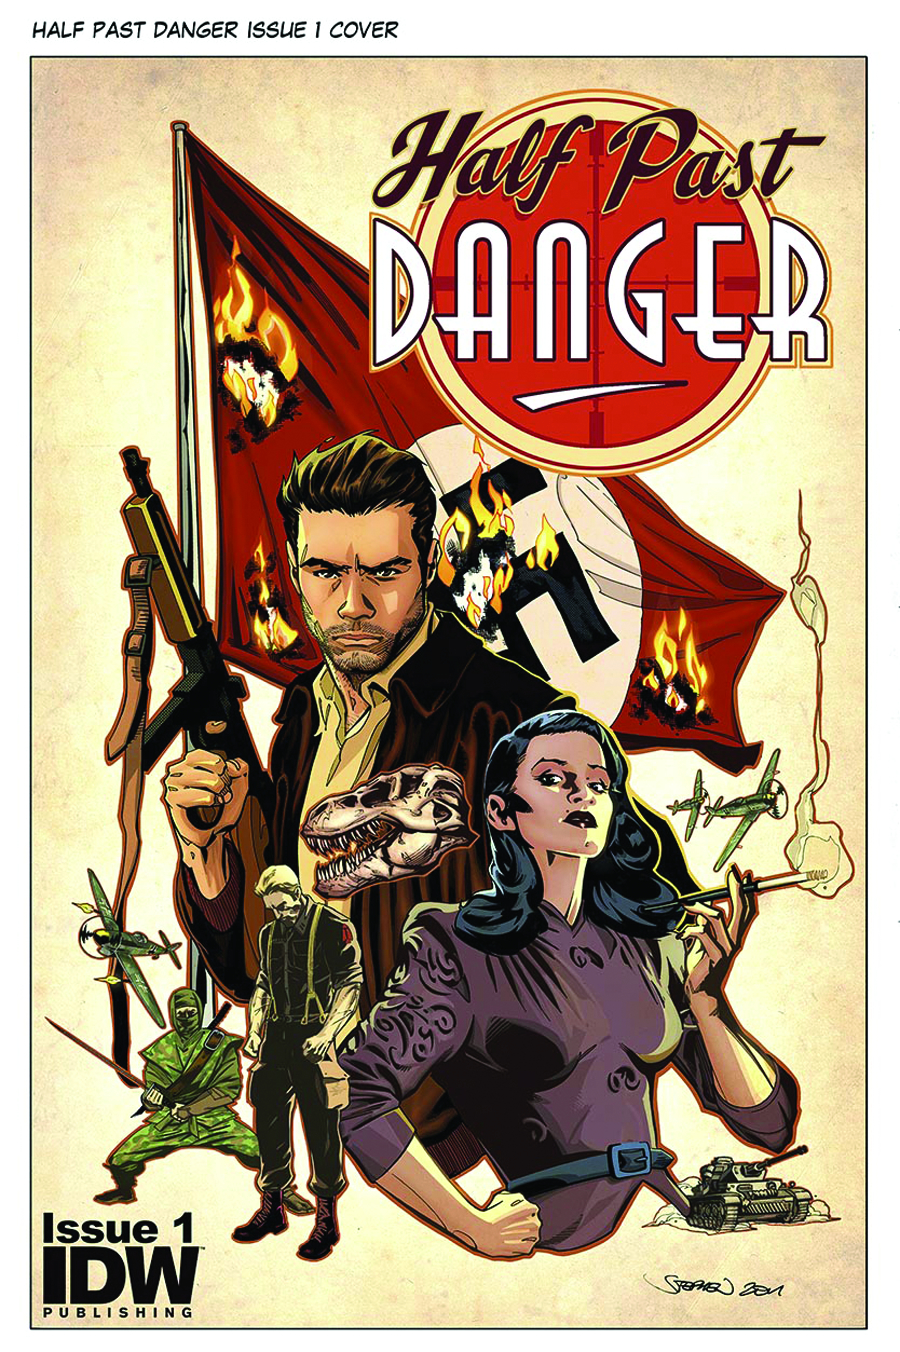 HALF PAST DANGER #1 (OF 6) 3RD PTG